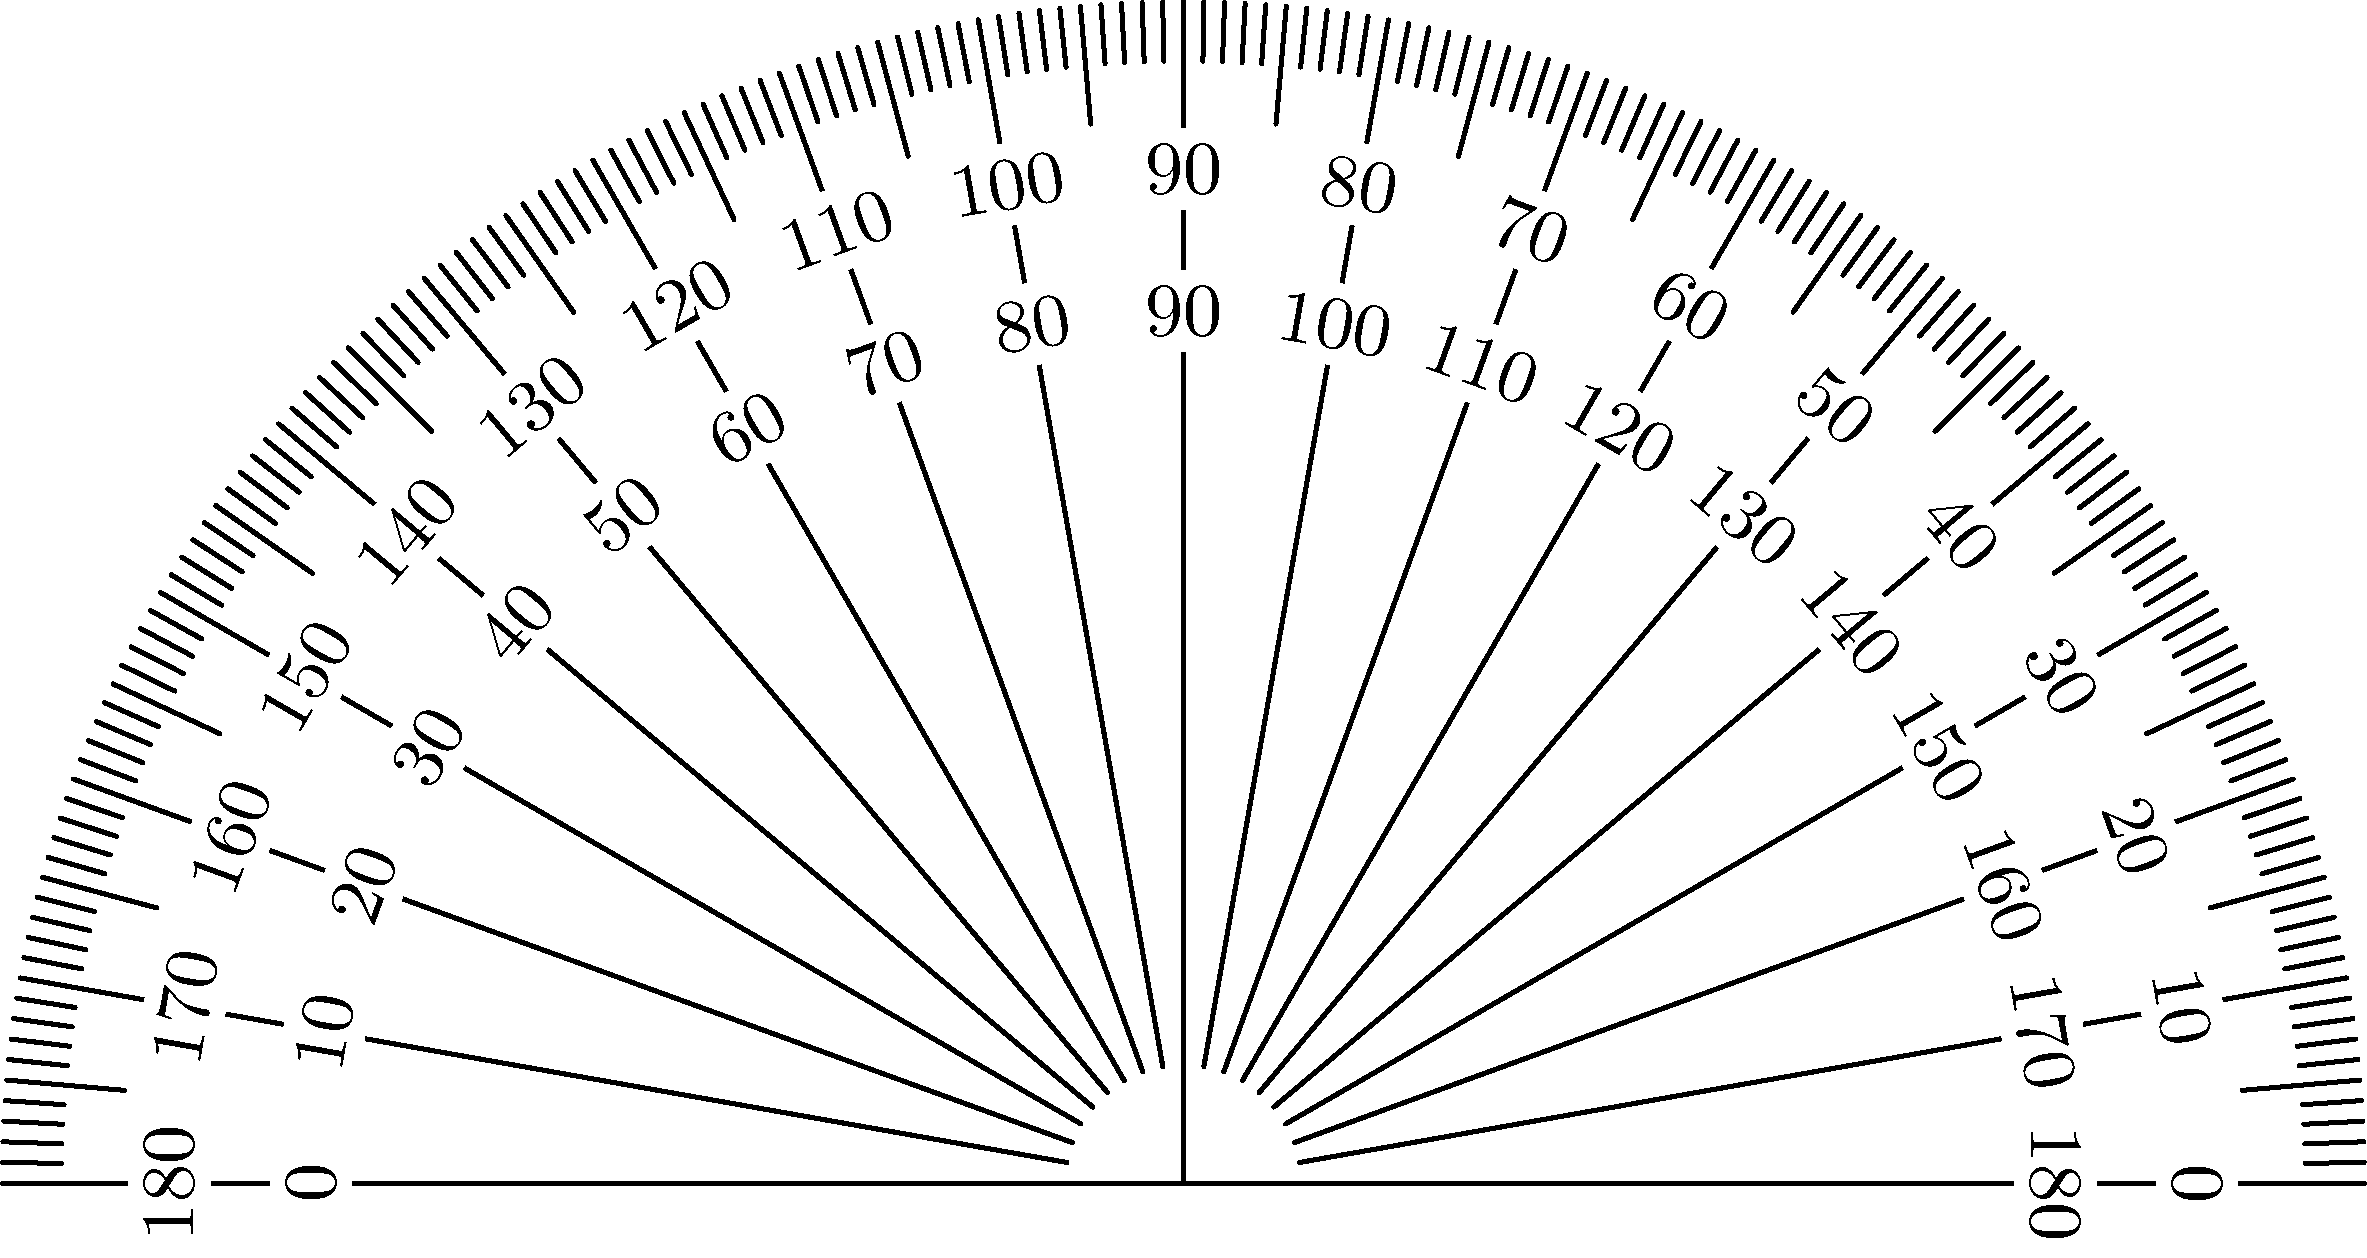 Exceptional image inside protractor printable